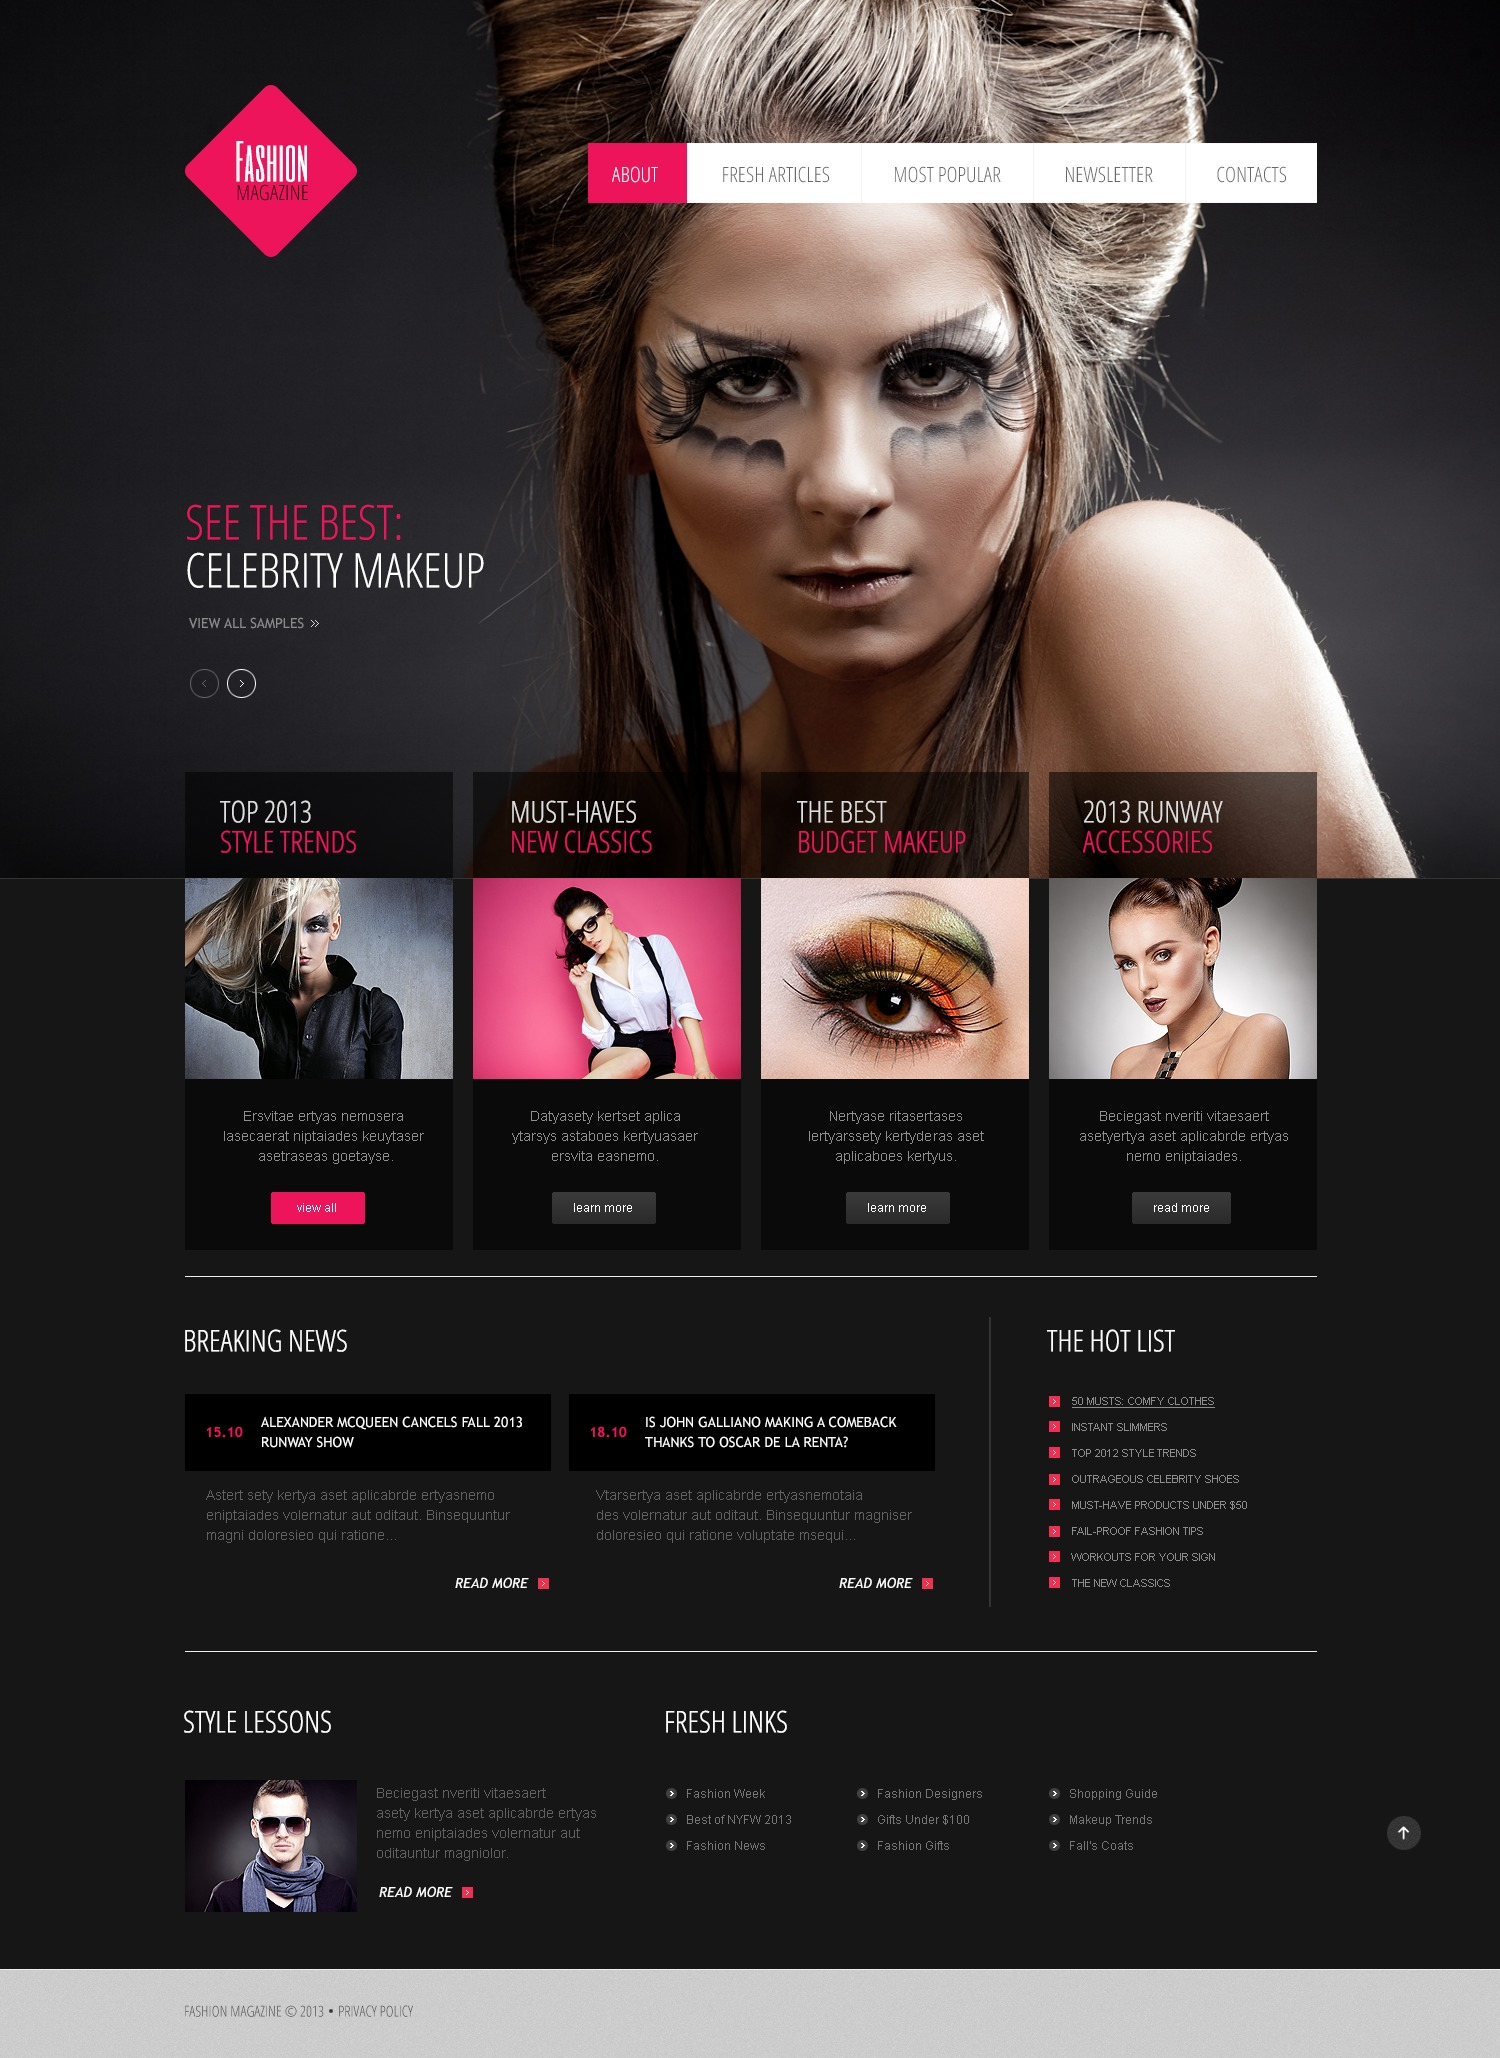 Free website templates for free download about (2,503)